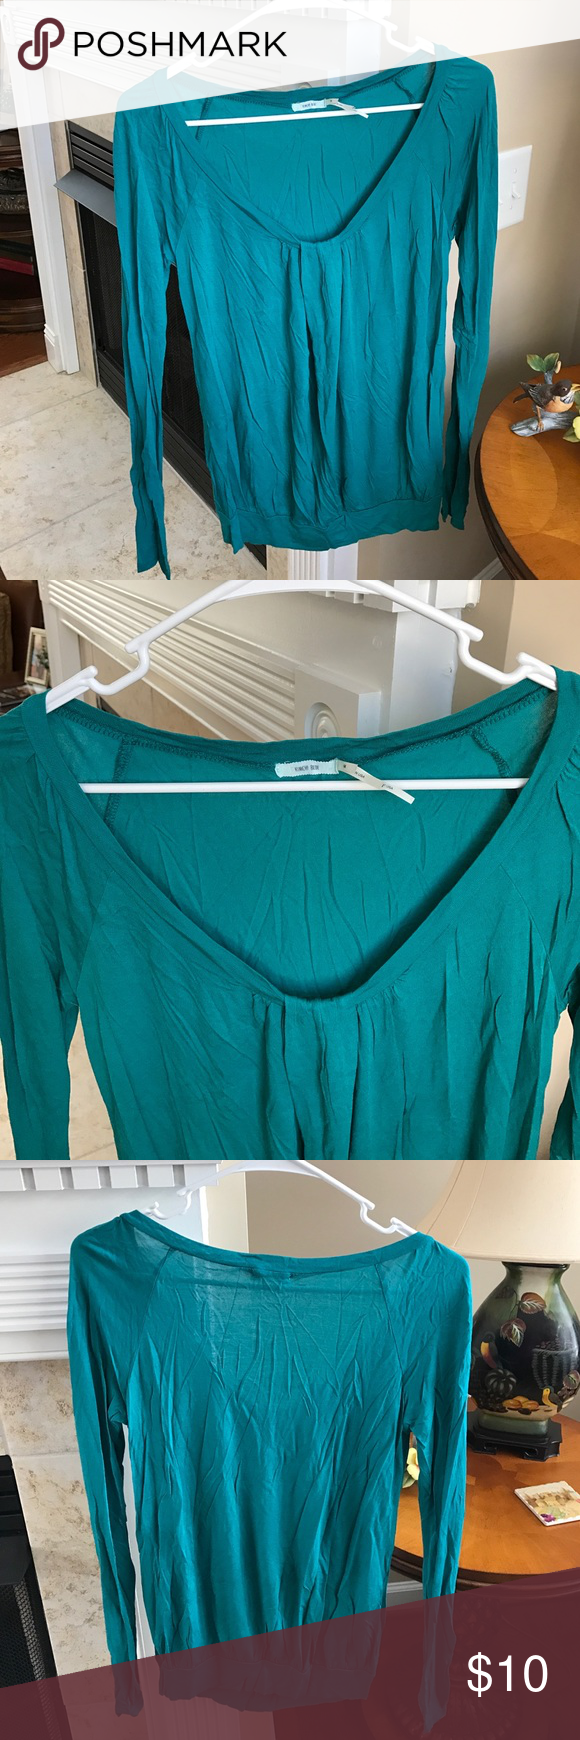 Urban Outfitters Teal Long Sleeve Top Urban Outfitters Teal Long Sleeve Top by Kimchi Blue. Size M. Great Used Condition . Kimchi Blue Tops Tees - Long Sleeve